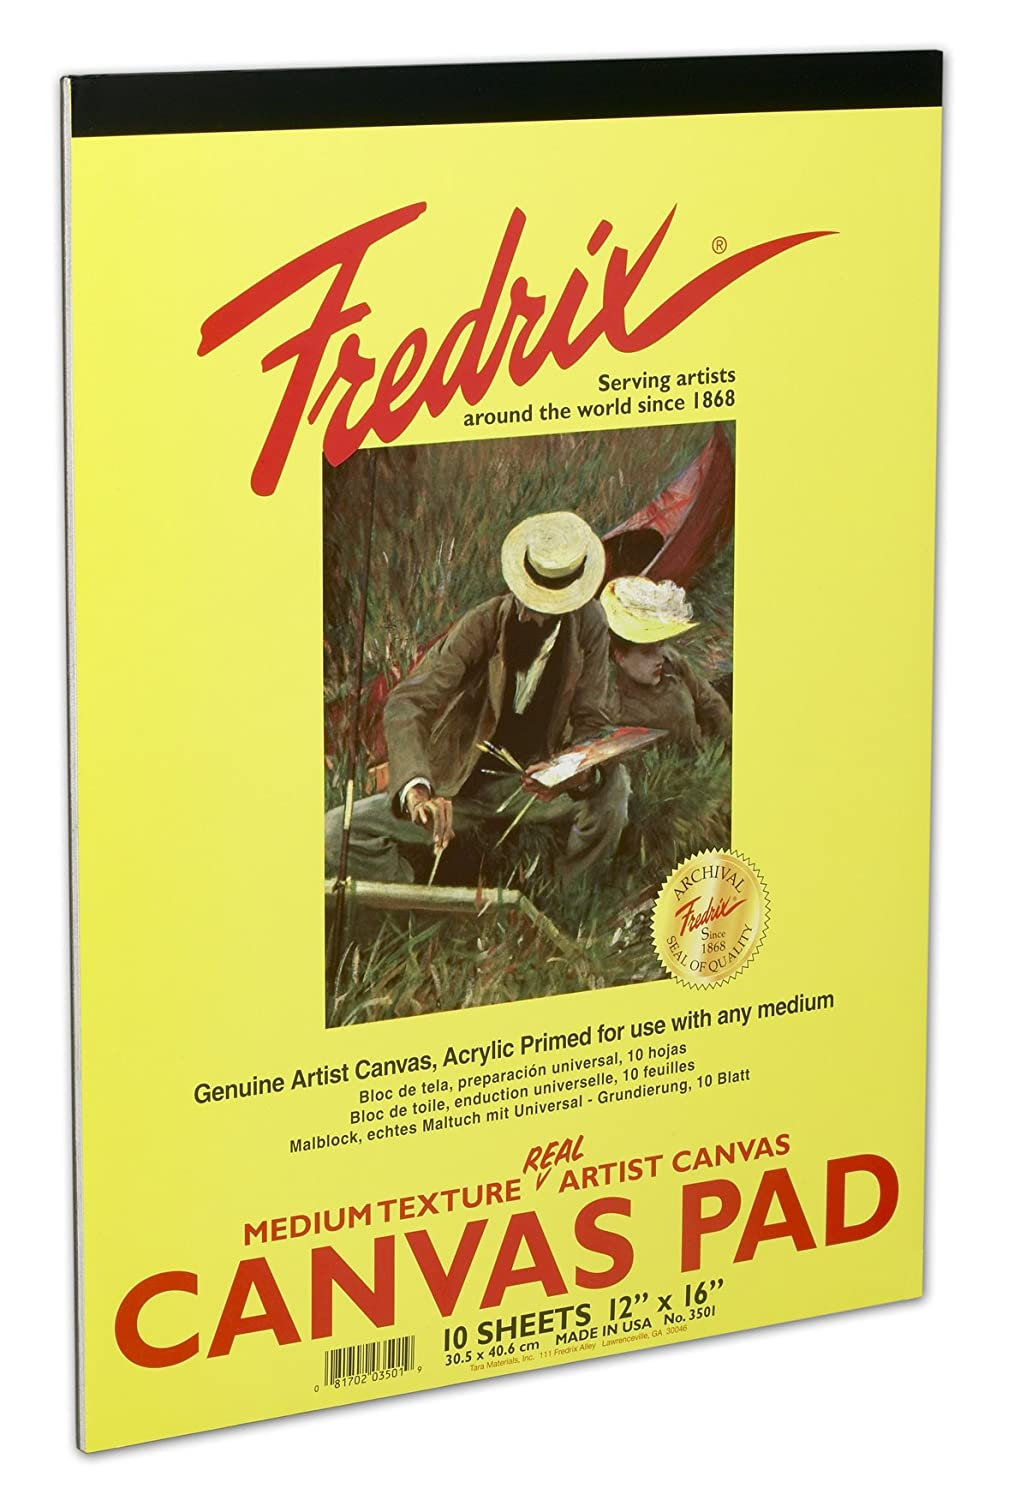 Fredrix 3501 canvas Pads, 12 da 40,6 cm Tara Materials Inc.